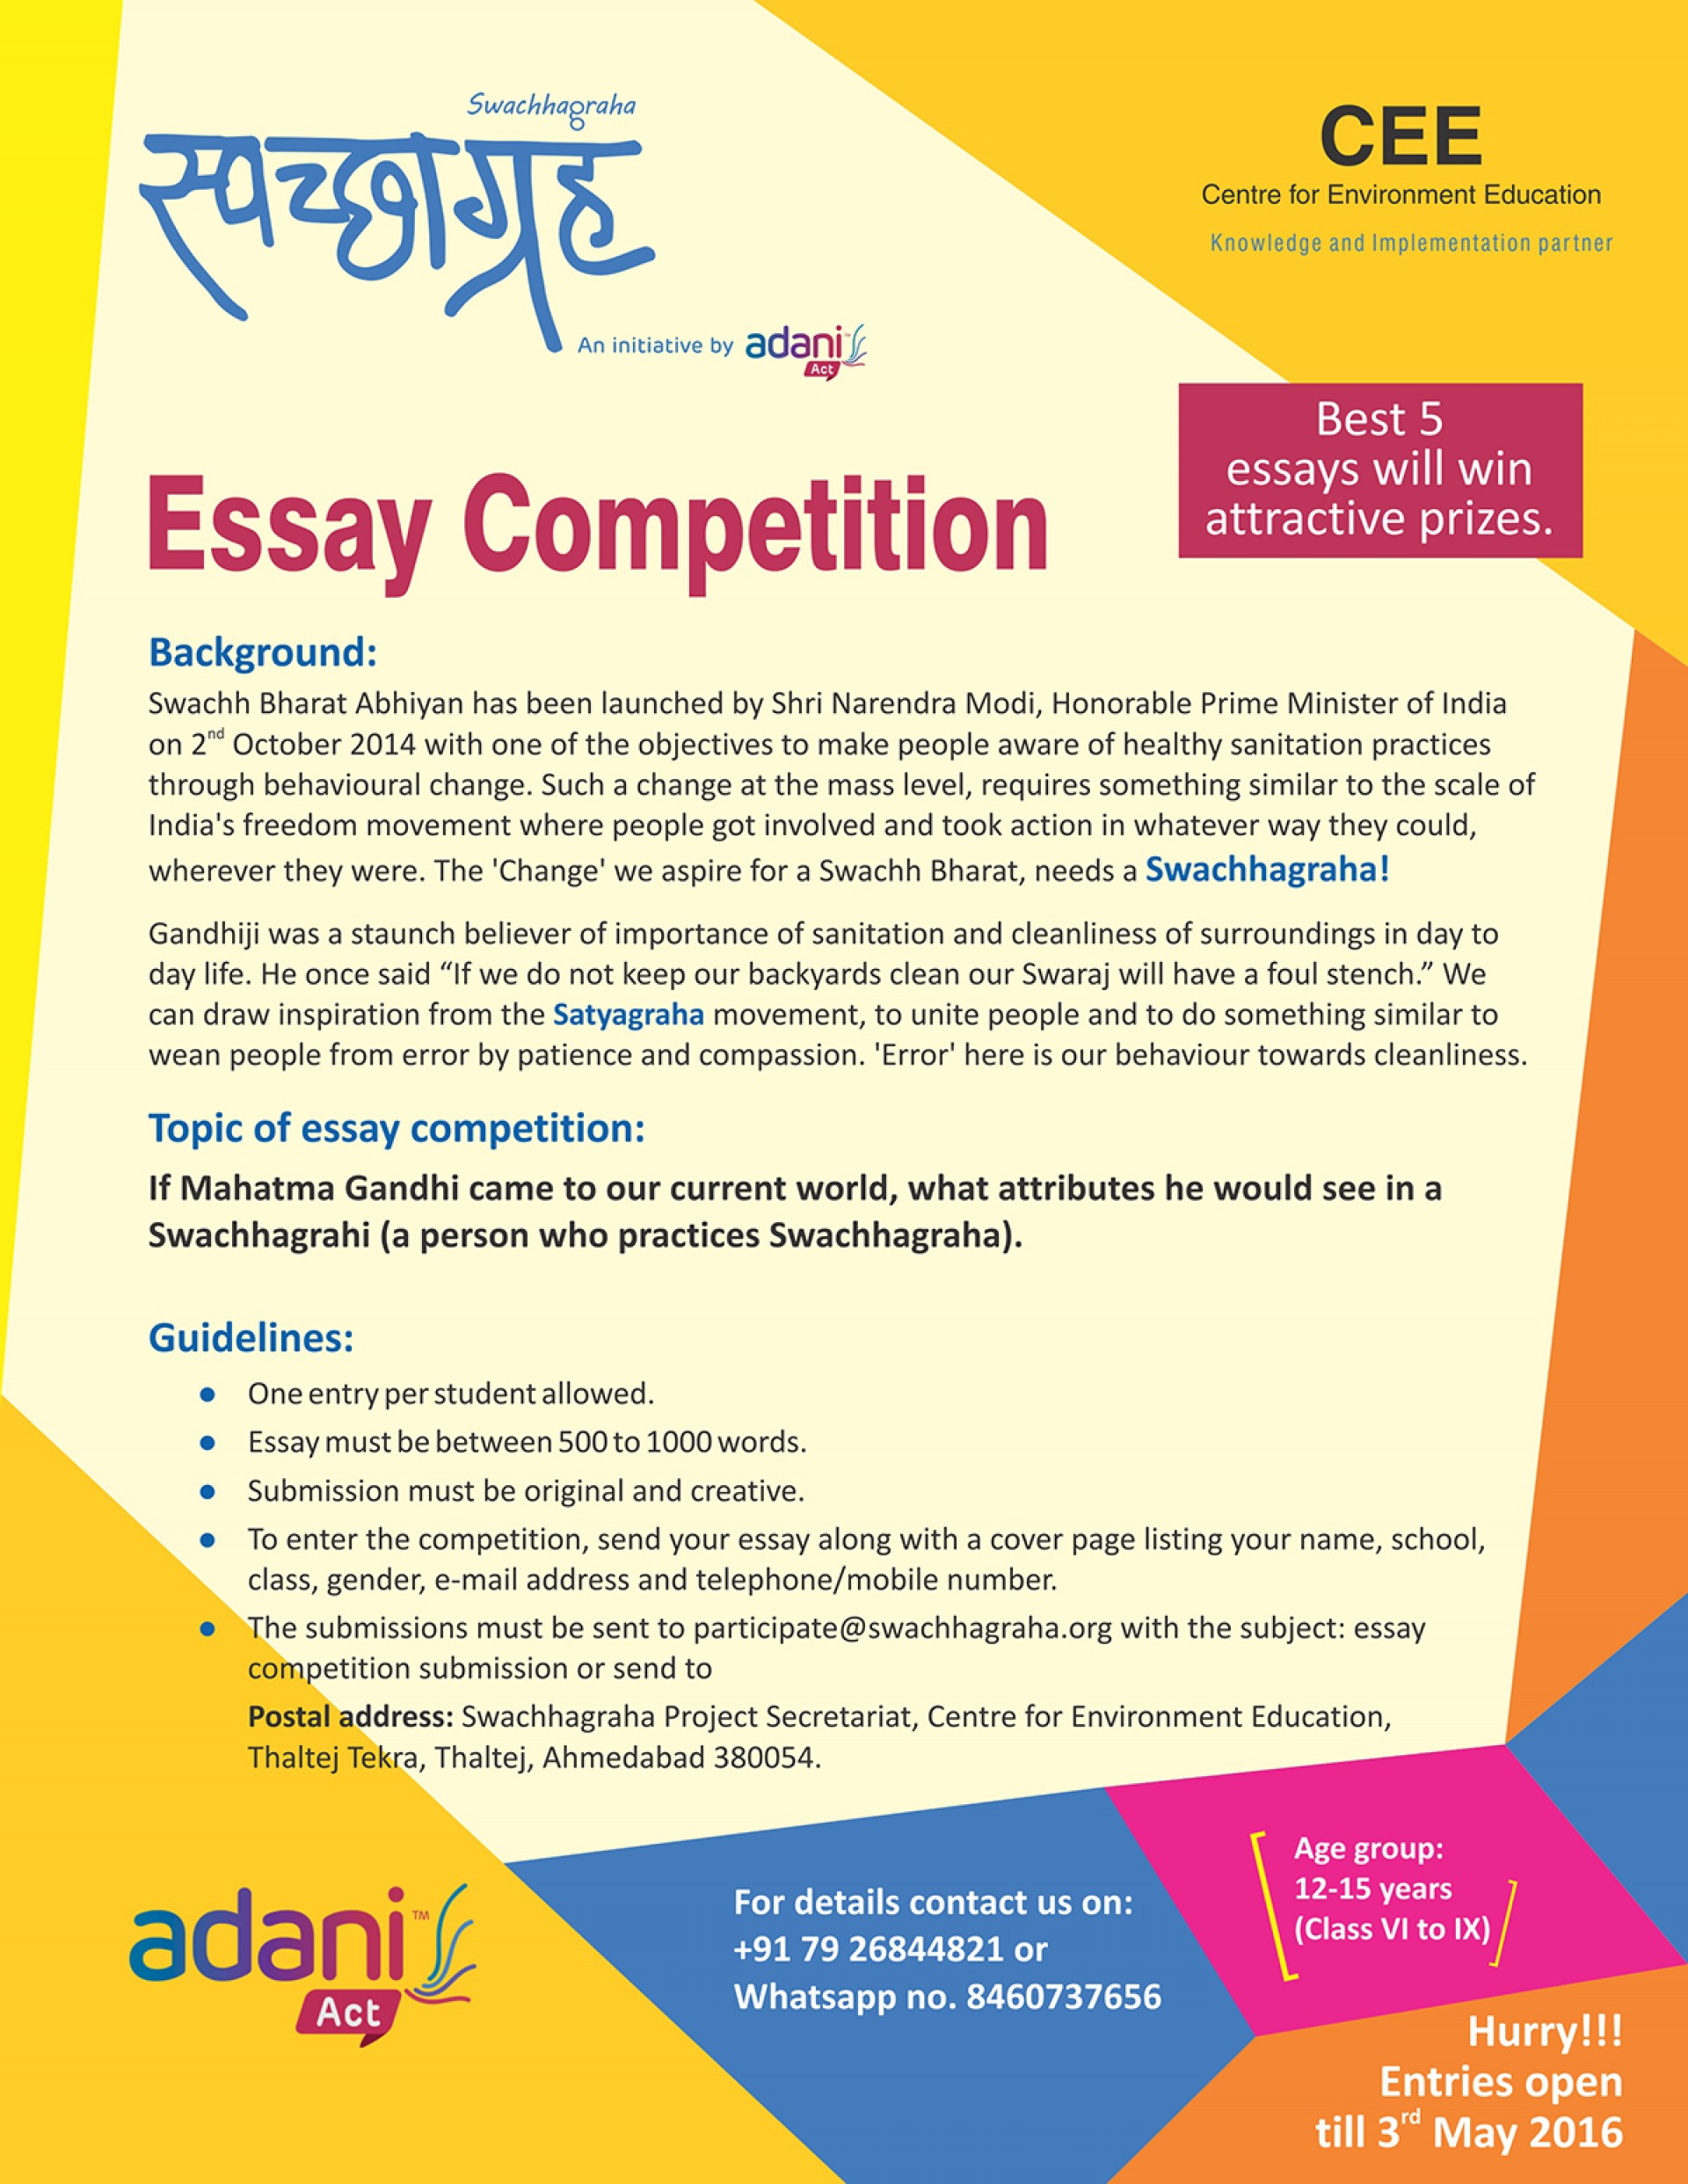 011 20180129171946essay20competition Essay About Cleanliness In School Phenomenal On Premises Toilets Writing 1920